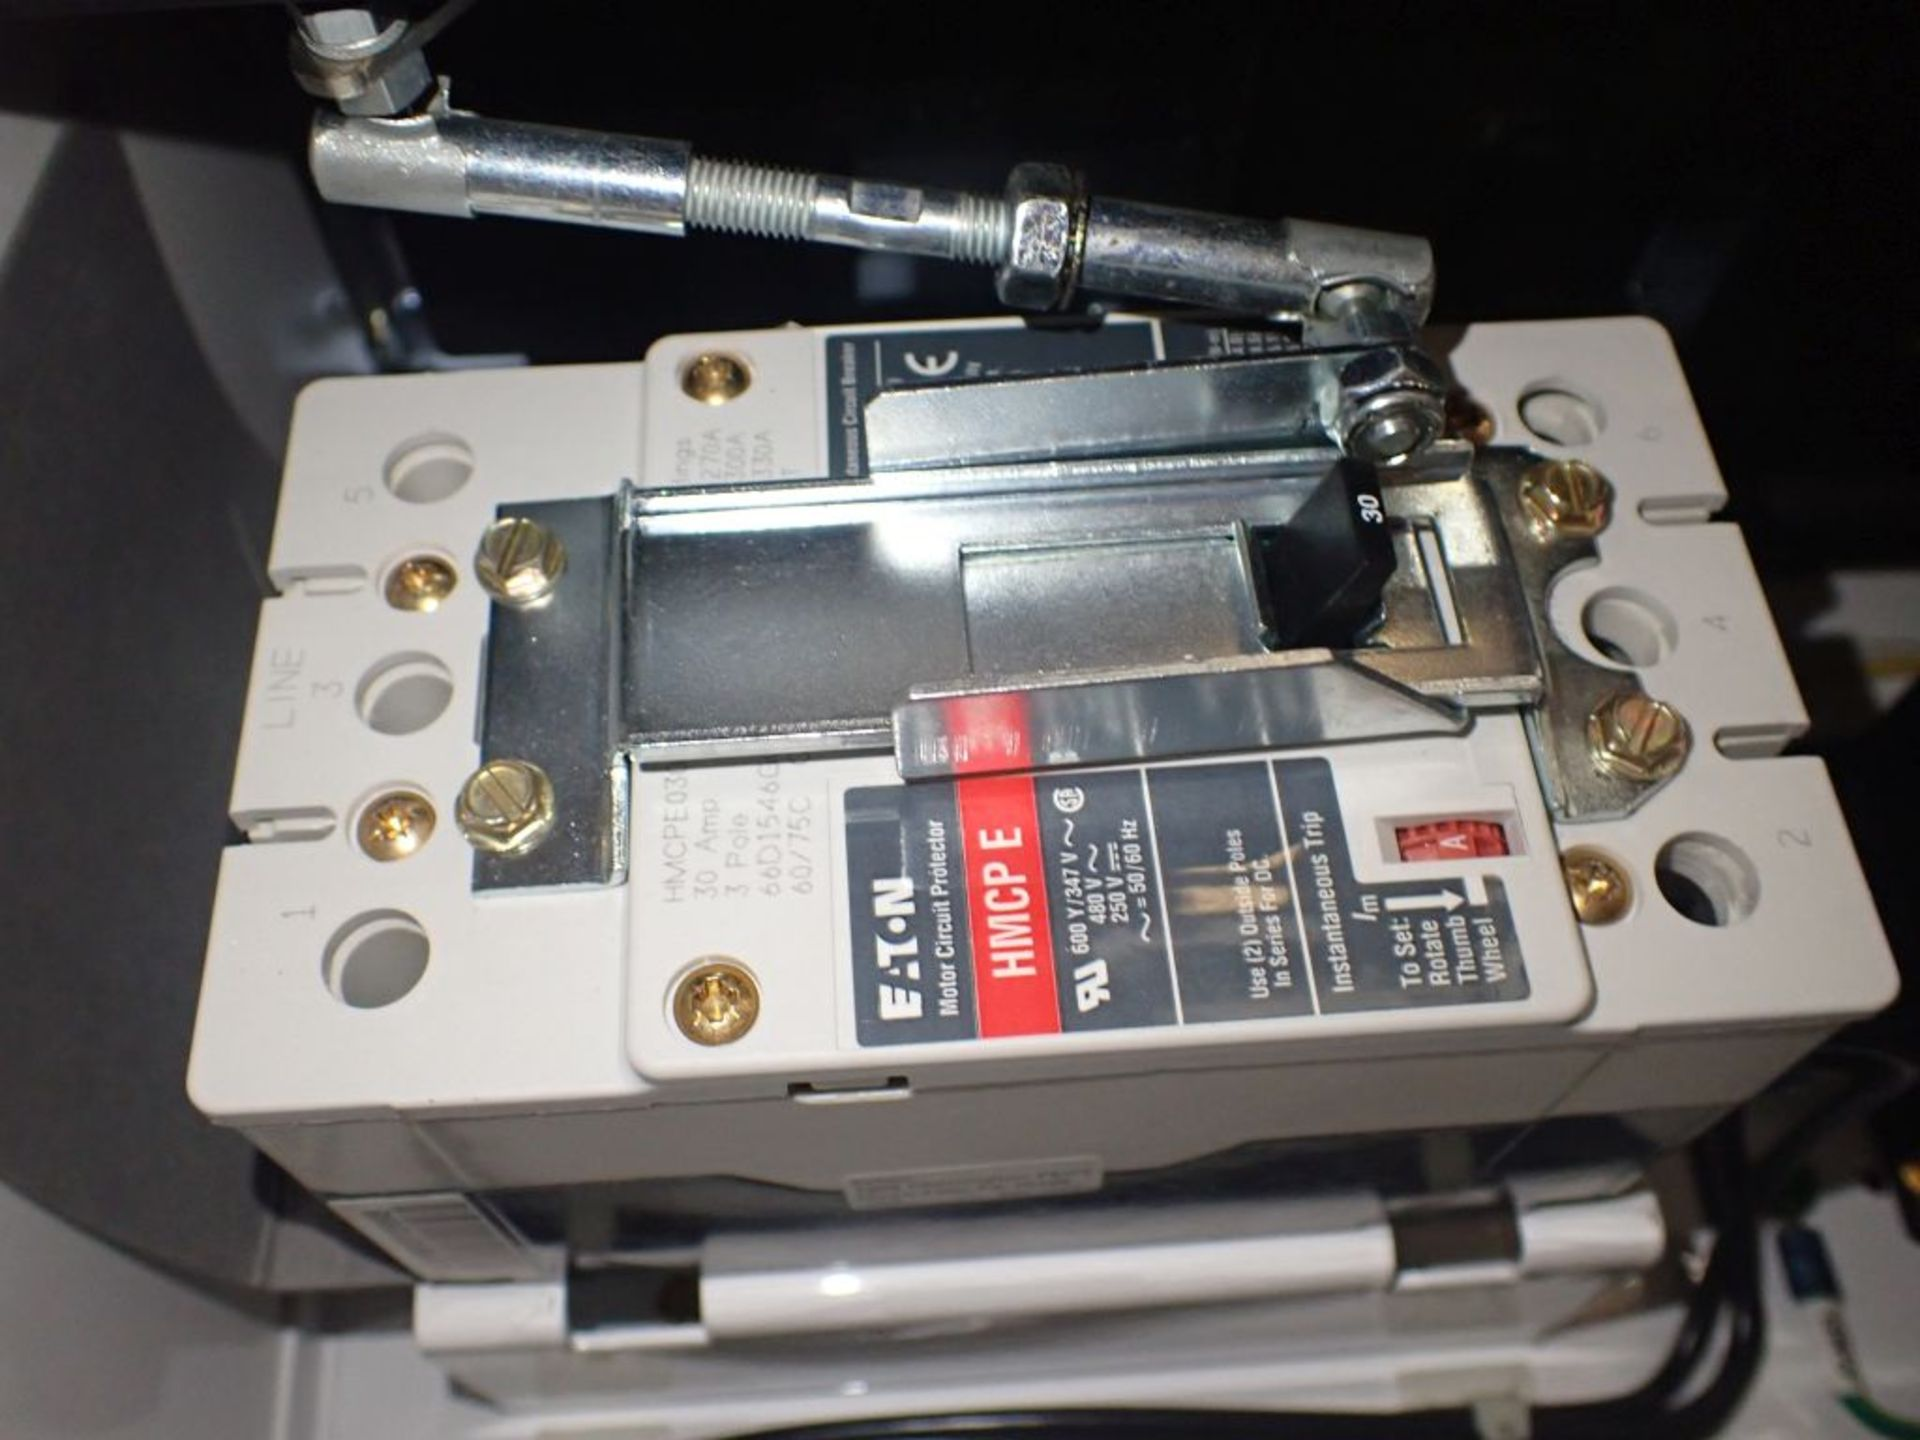 Eaton Freedom 2100 Series Motor Control Center | (2) F206-15A-10HP; (1) FDRB-250A; (1) FDRB-400A; ( - Image 35 of 104